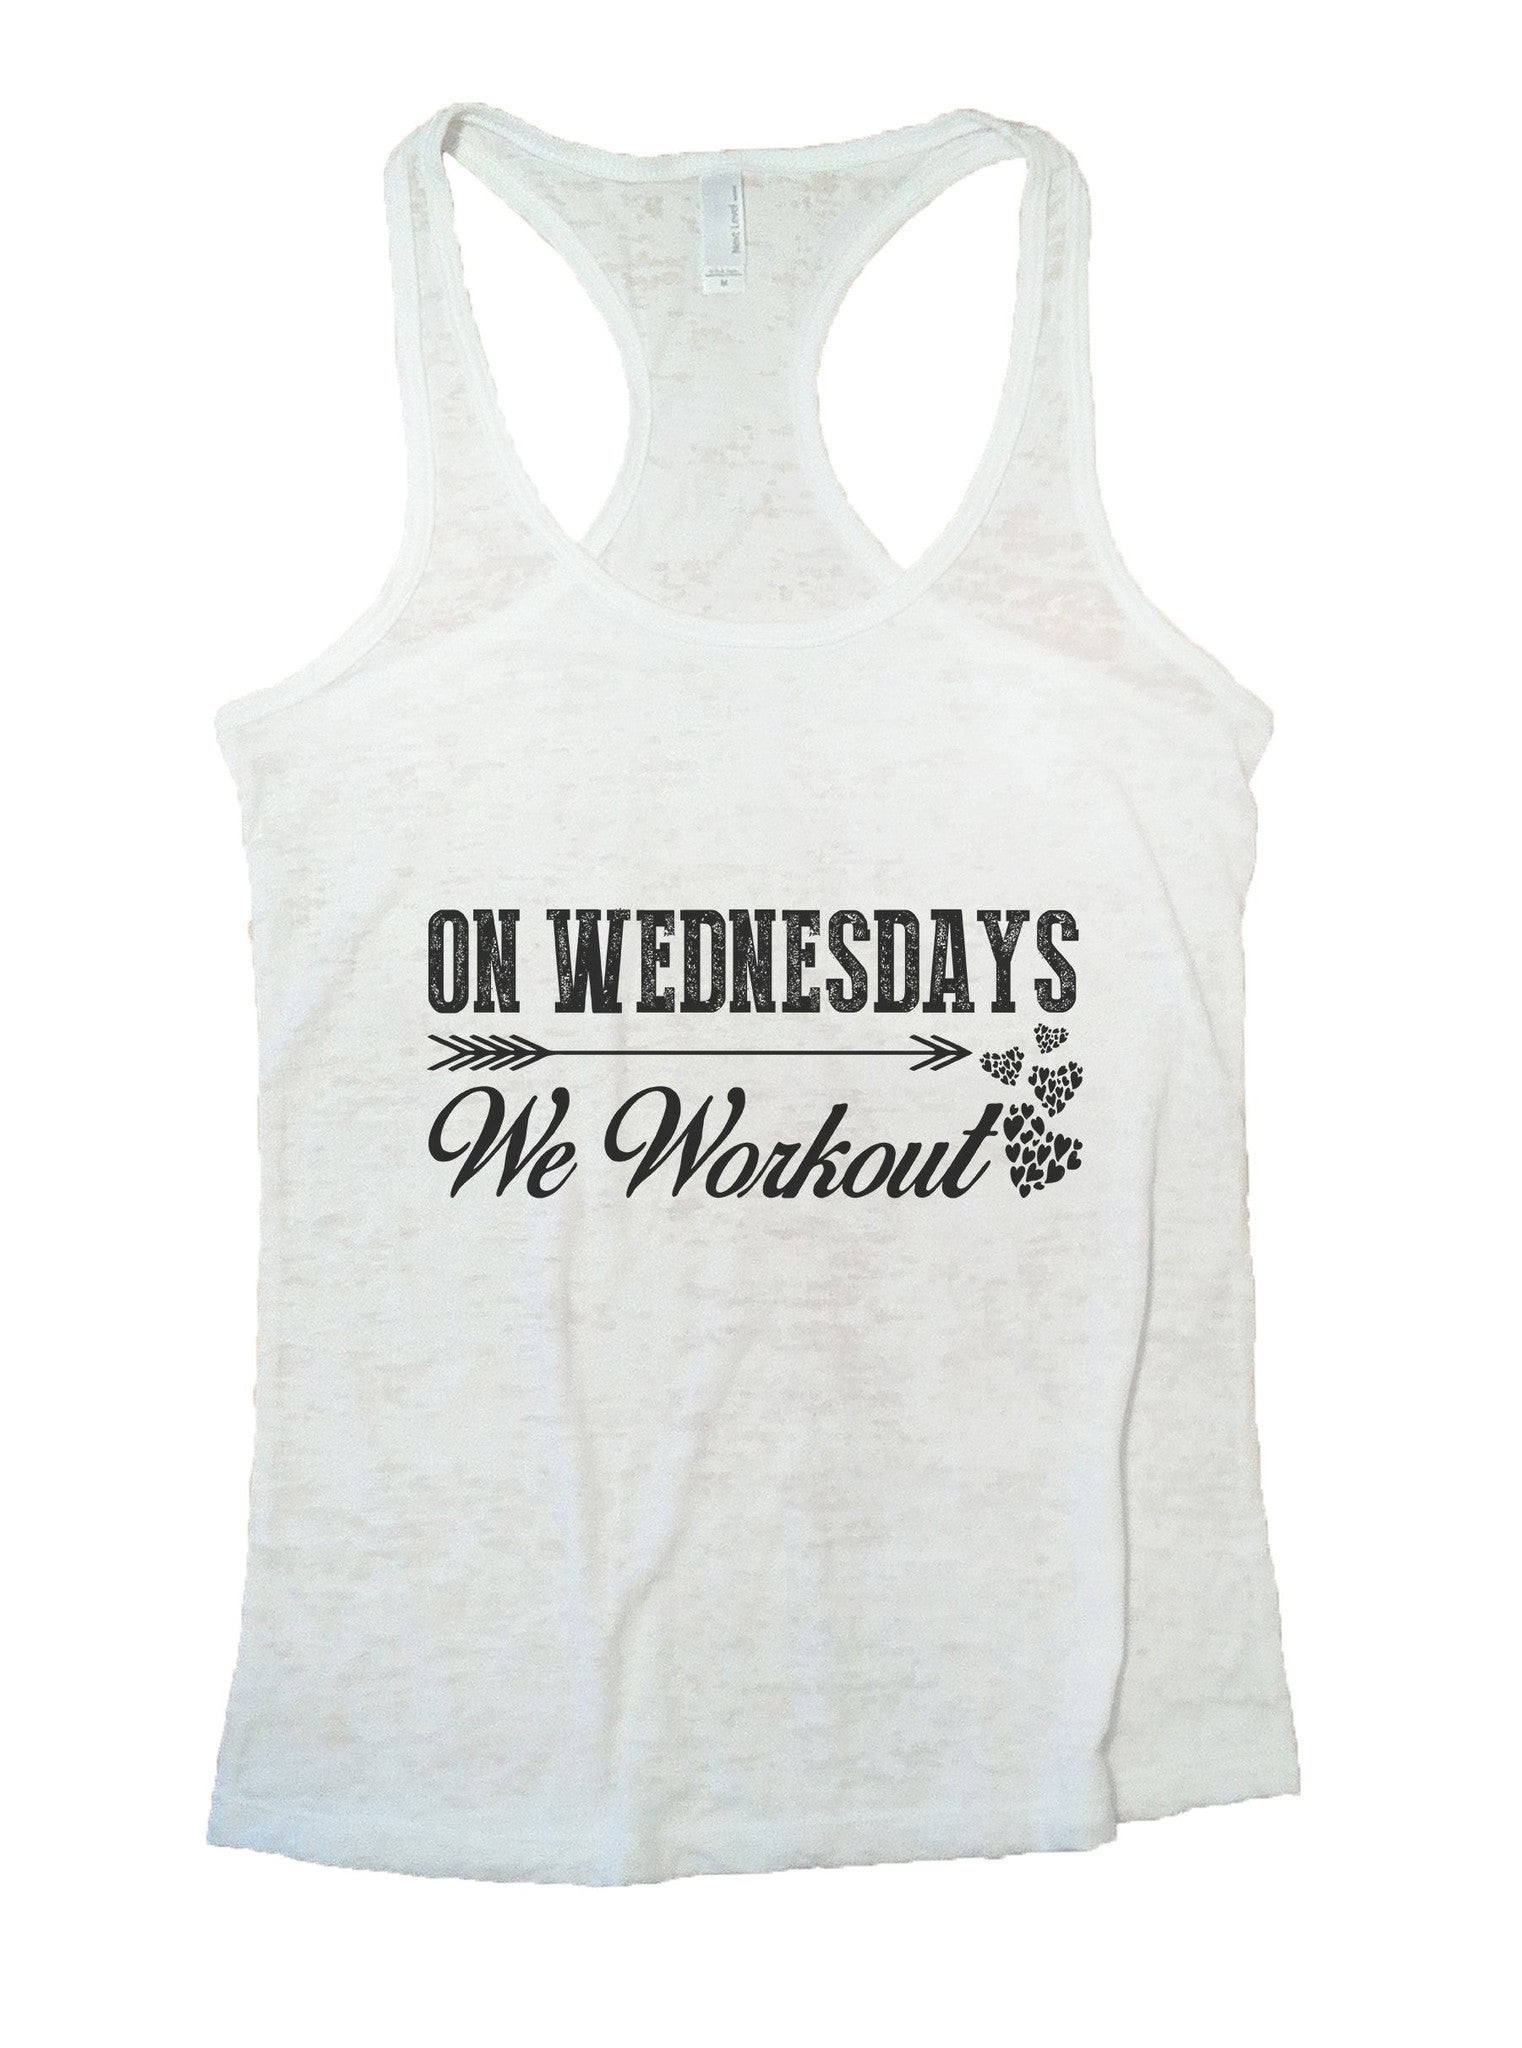 On Wednesdays We Workout Burnout Tank Top By BurnoutTankTops.com - 923 - Funny Shirts Tank Tops Burnouts and Triblends  - 6